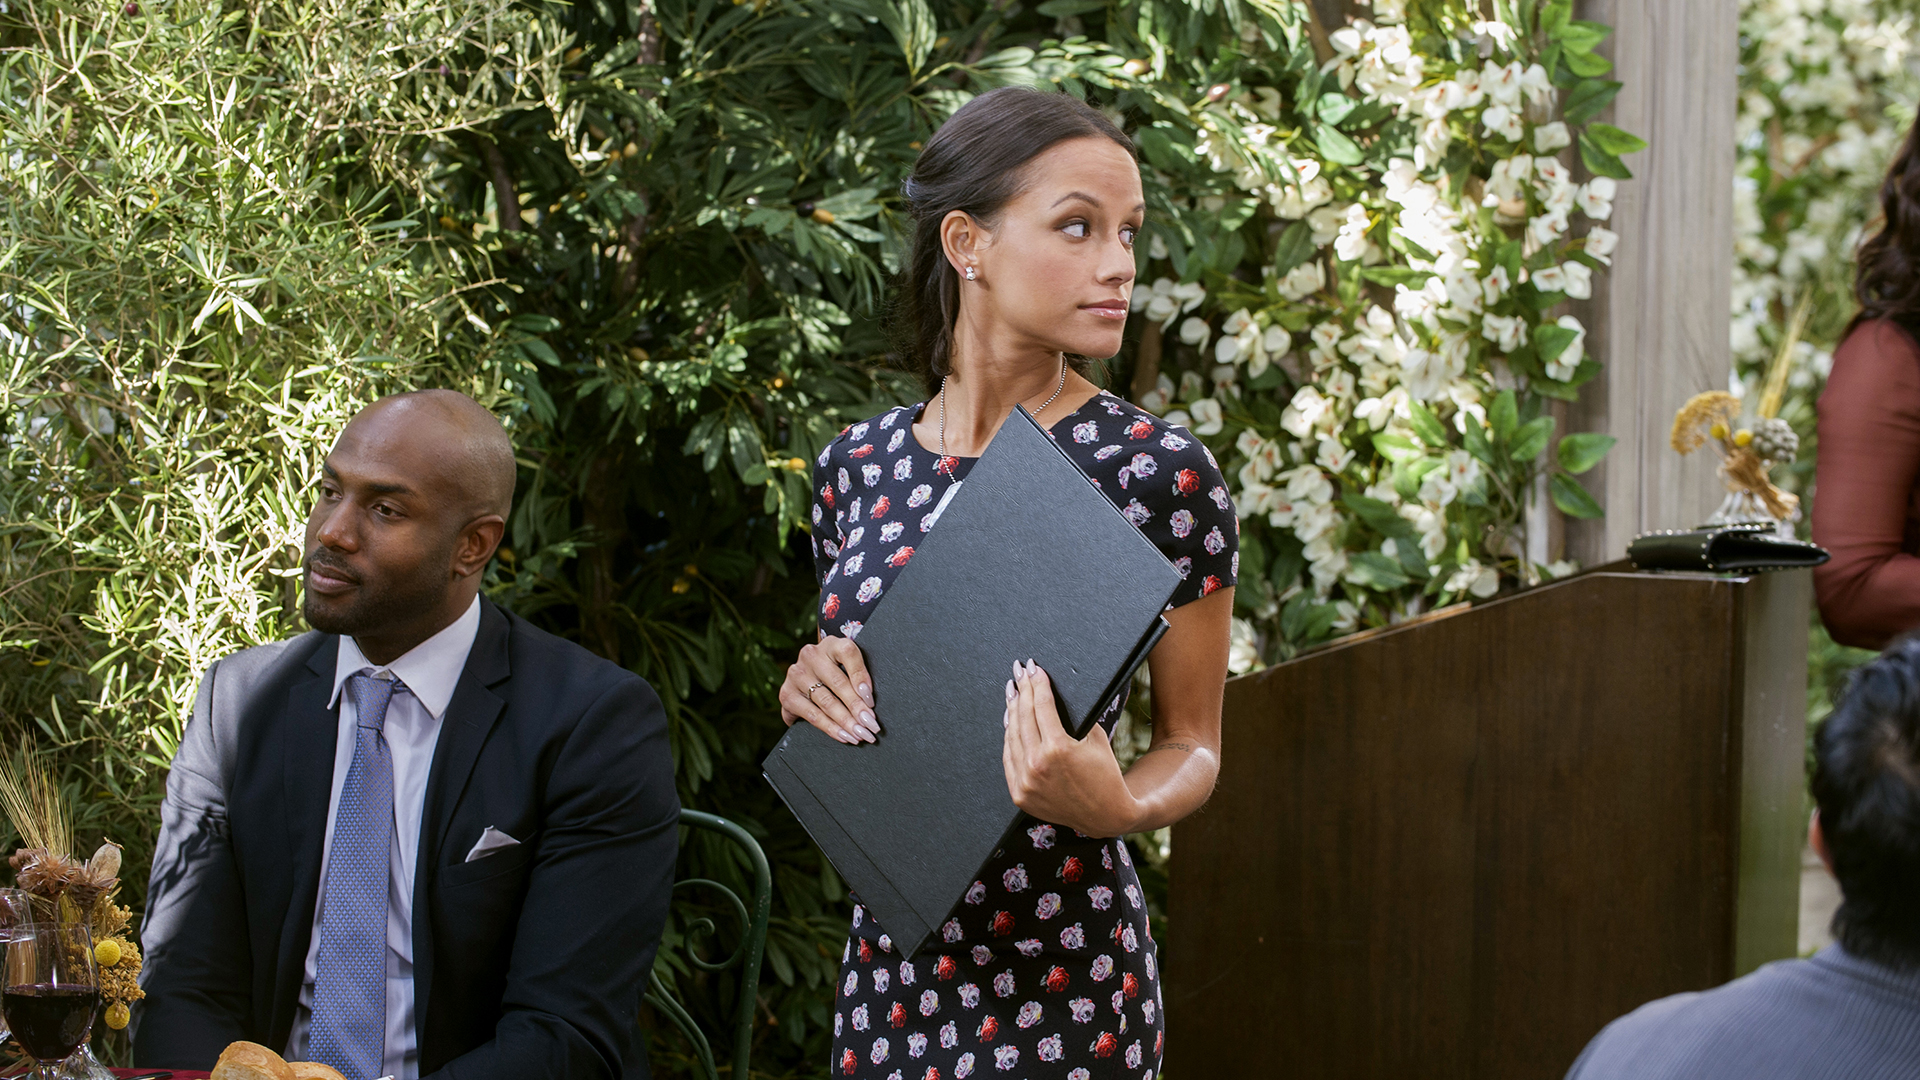 Jessica plays a hostess at II Giardino on The Bold and the Beautiful.